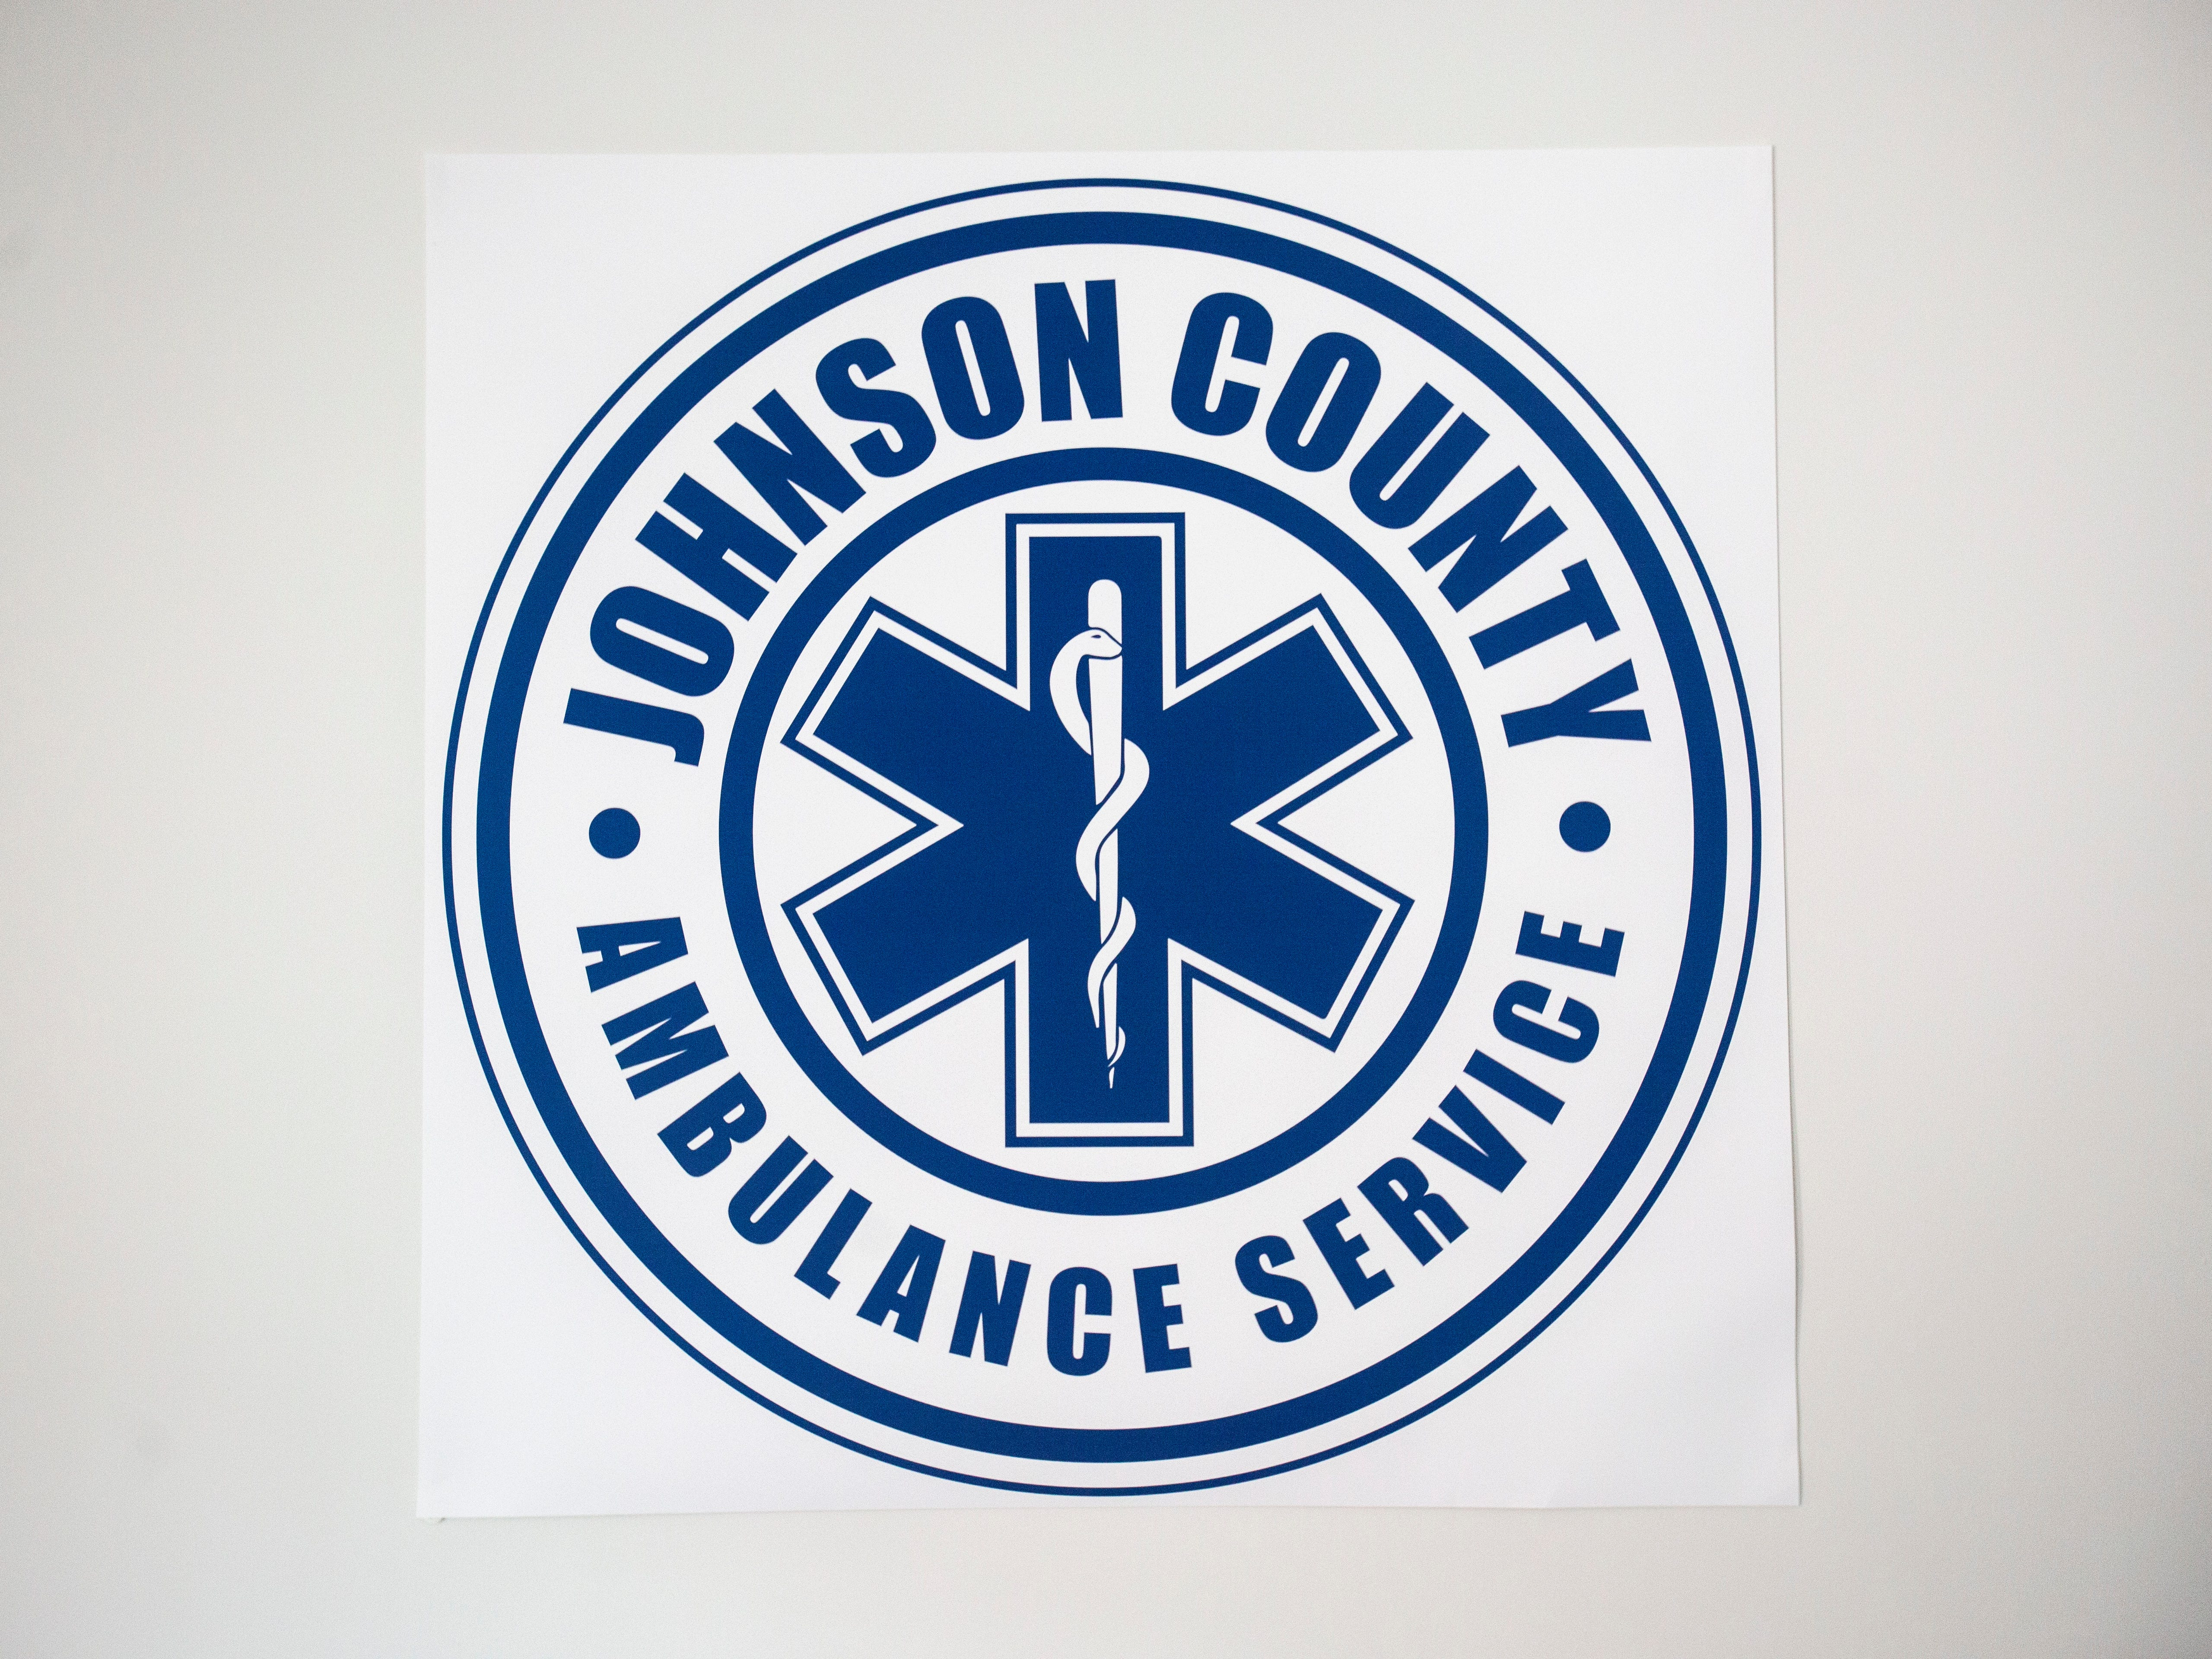 The seal of the Johnson County Ambulance Service is pictured on Wednesday, April 17, 2019, at the Johnson County Ambulance Services building at 808 S. Dubuque Street in Iowa City, Iowa.